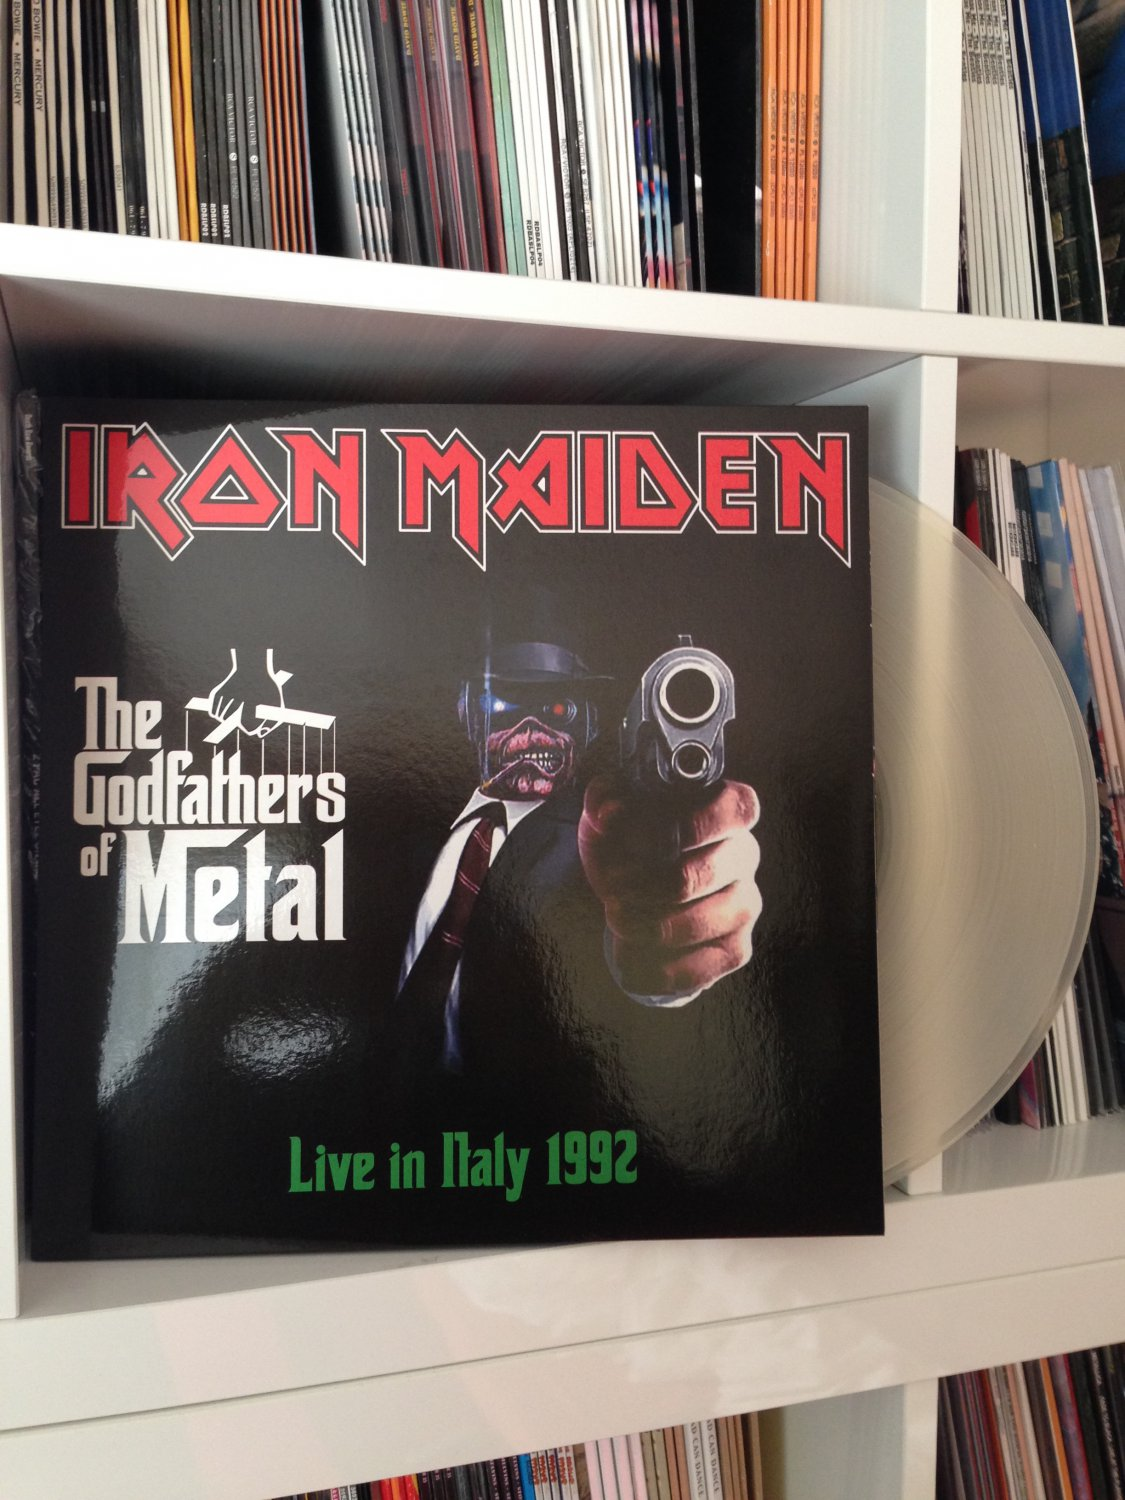 IRON MAIDEN �2LP the godfathers of metal